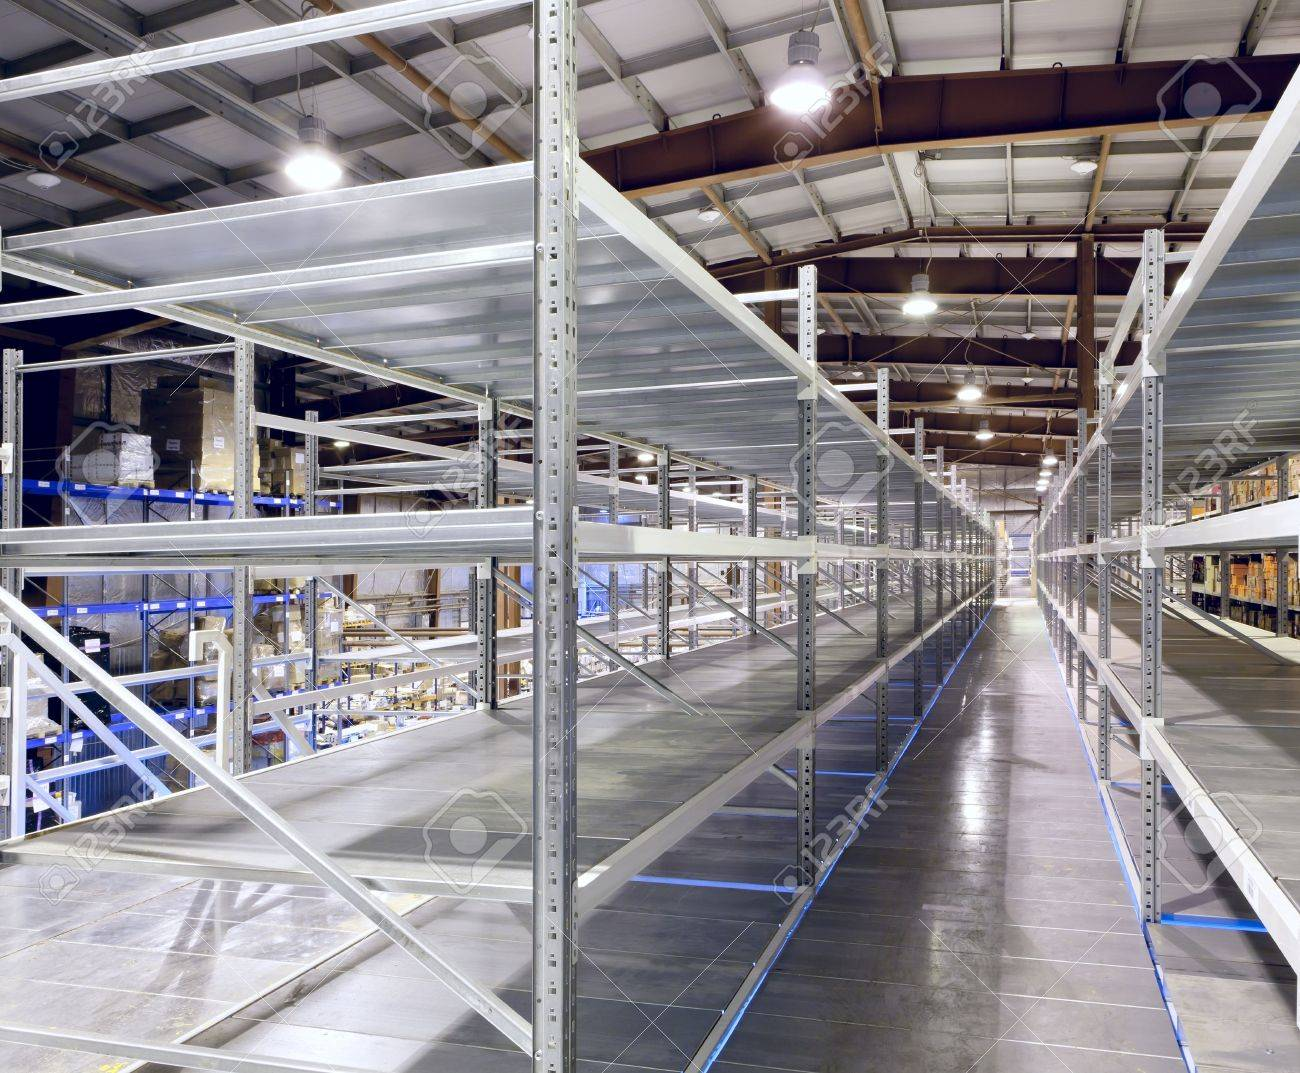 Interior of the new and modern warehouse space in a well lit large room Stock Photo - 19852419